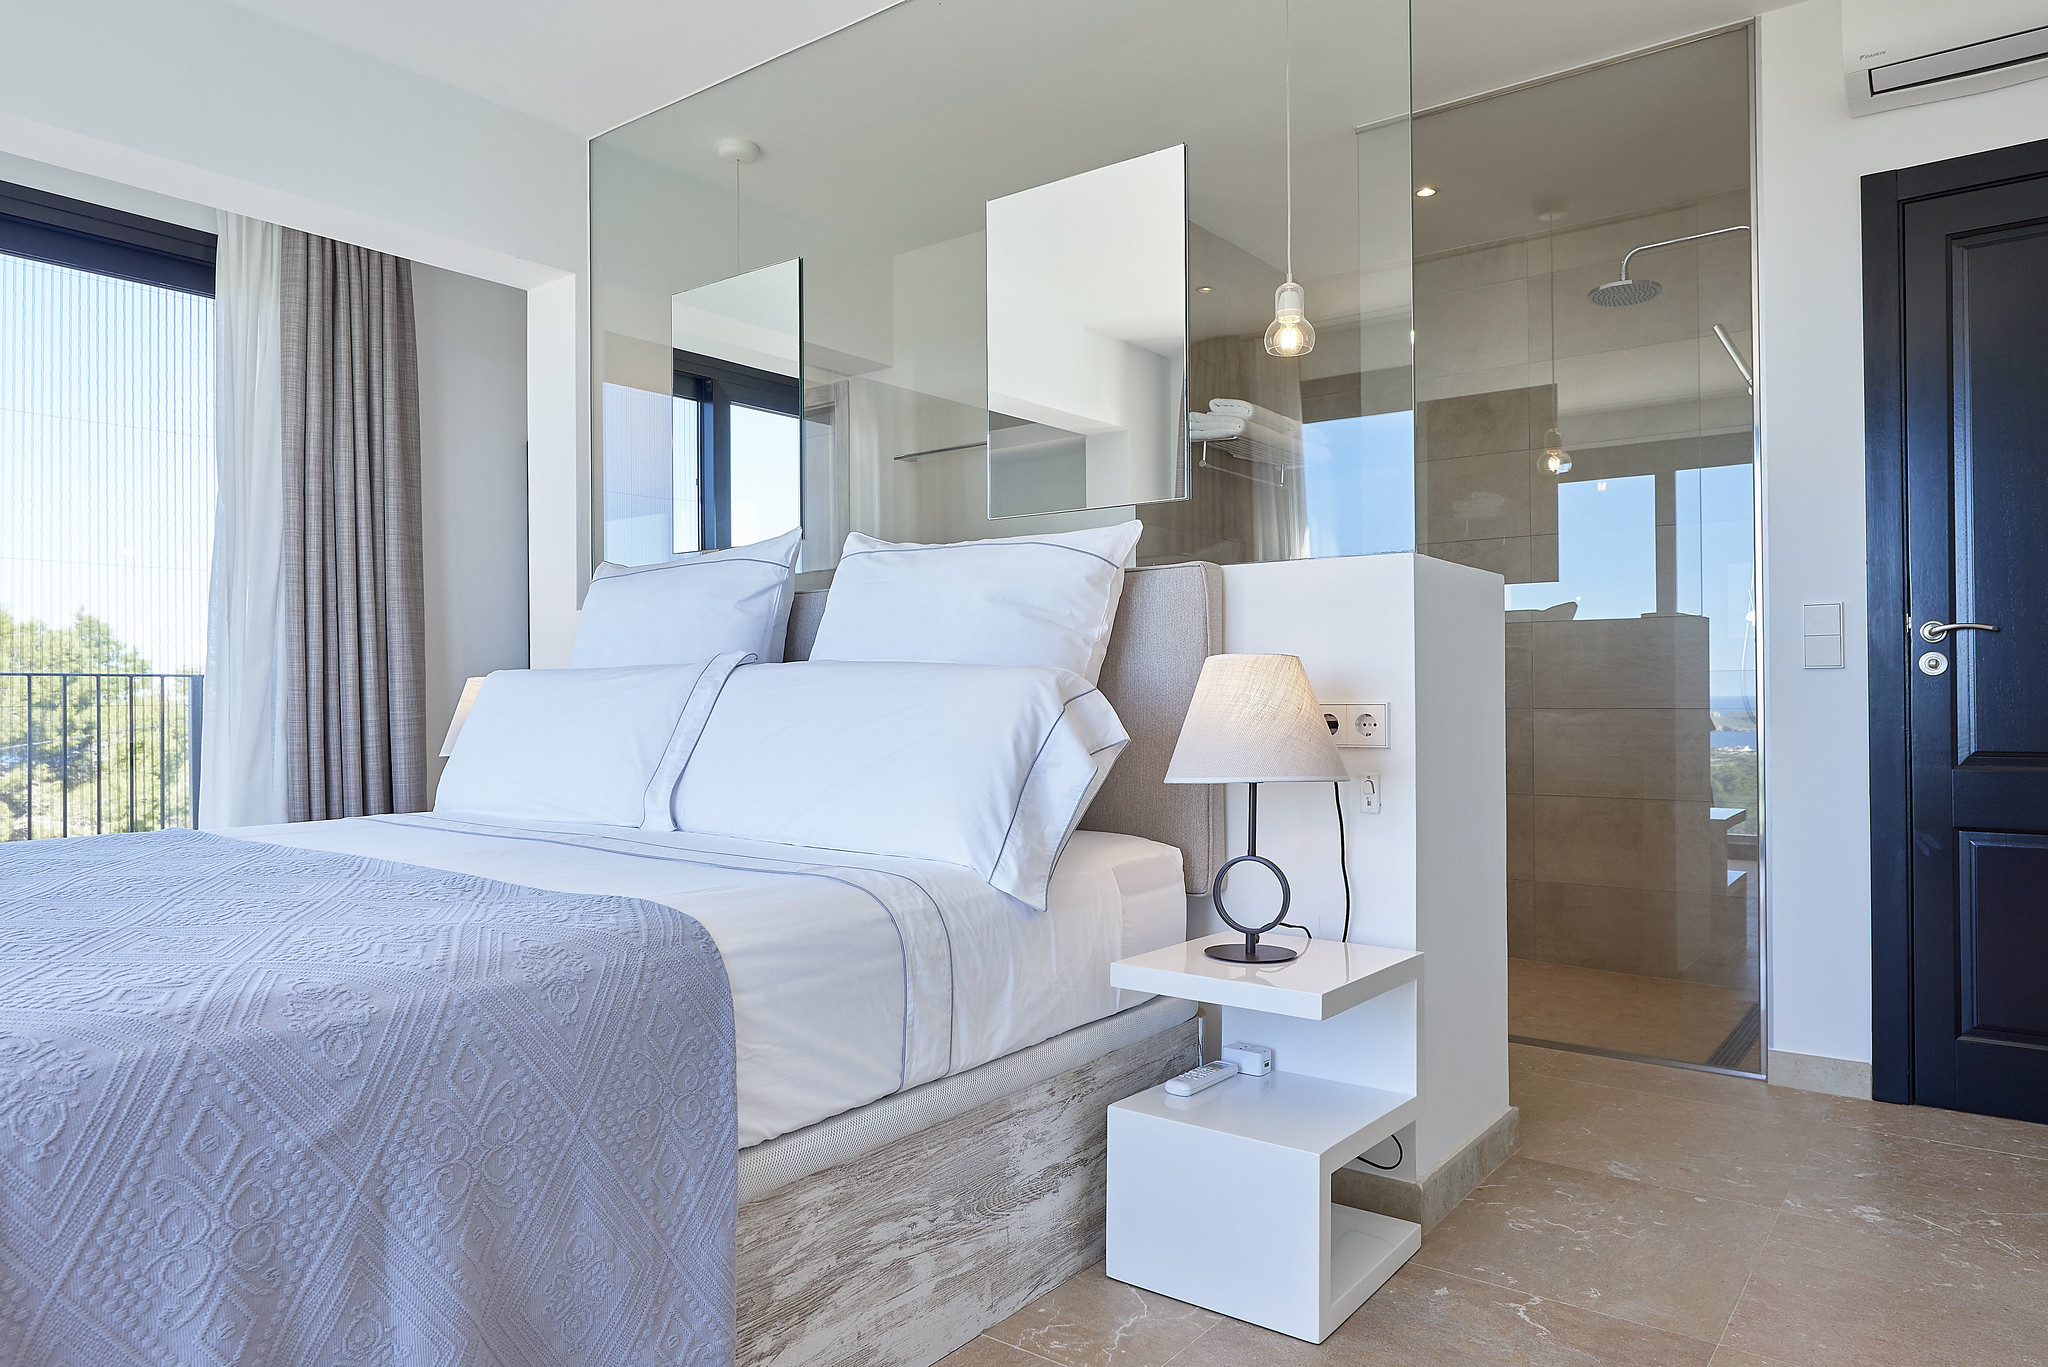 https://www.white-ibiza.com/wp-content/uploads/2020/06/white-ibiza-villas-sa-serra-interior-bedroom4.jpg